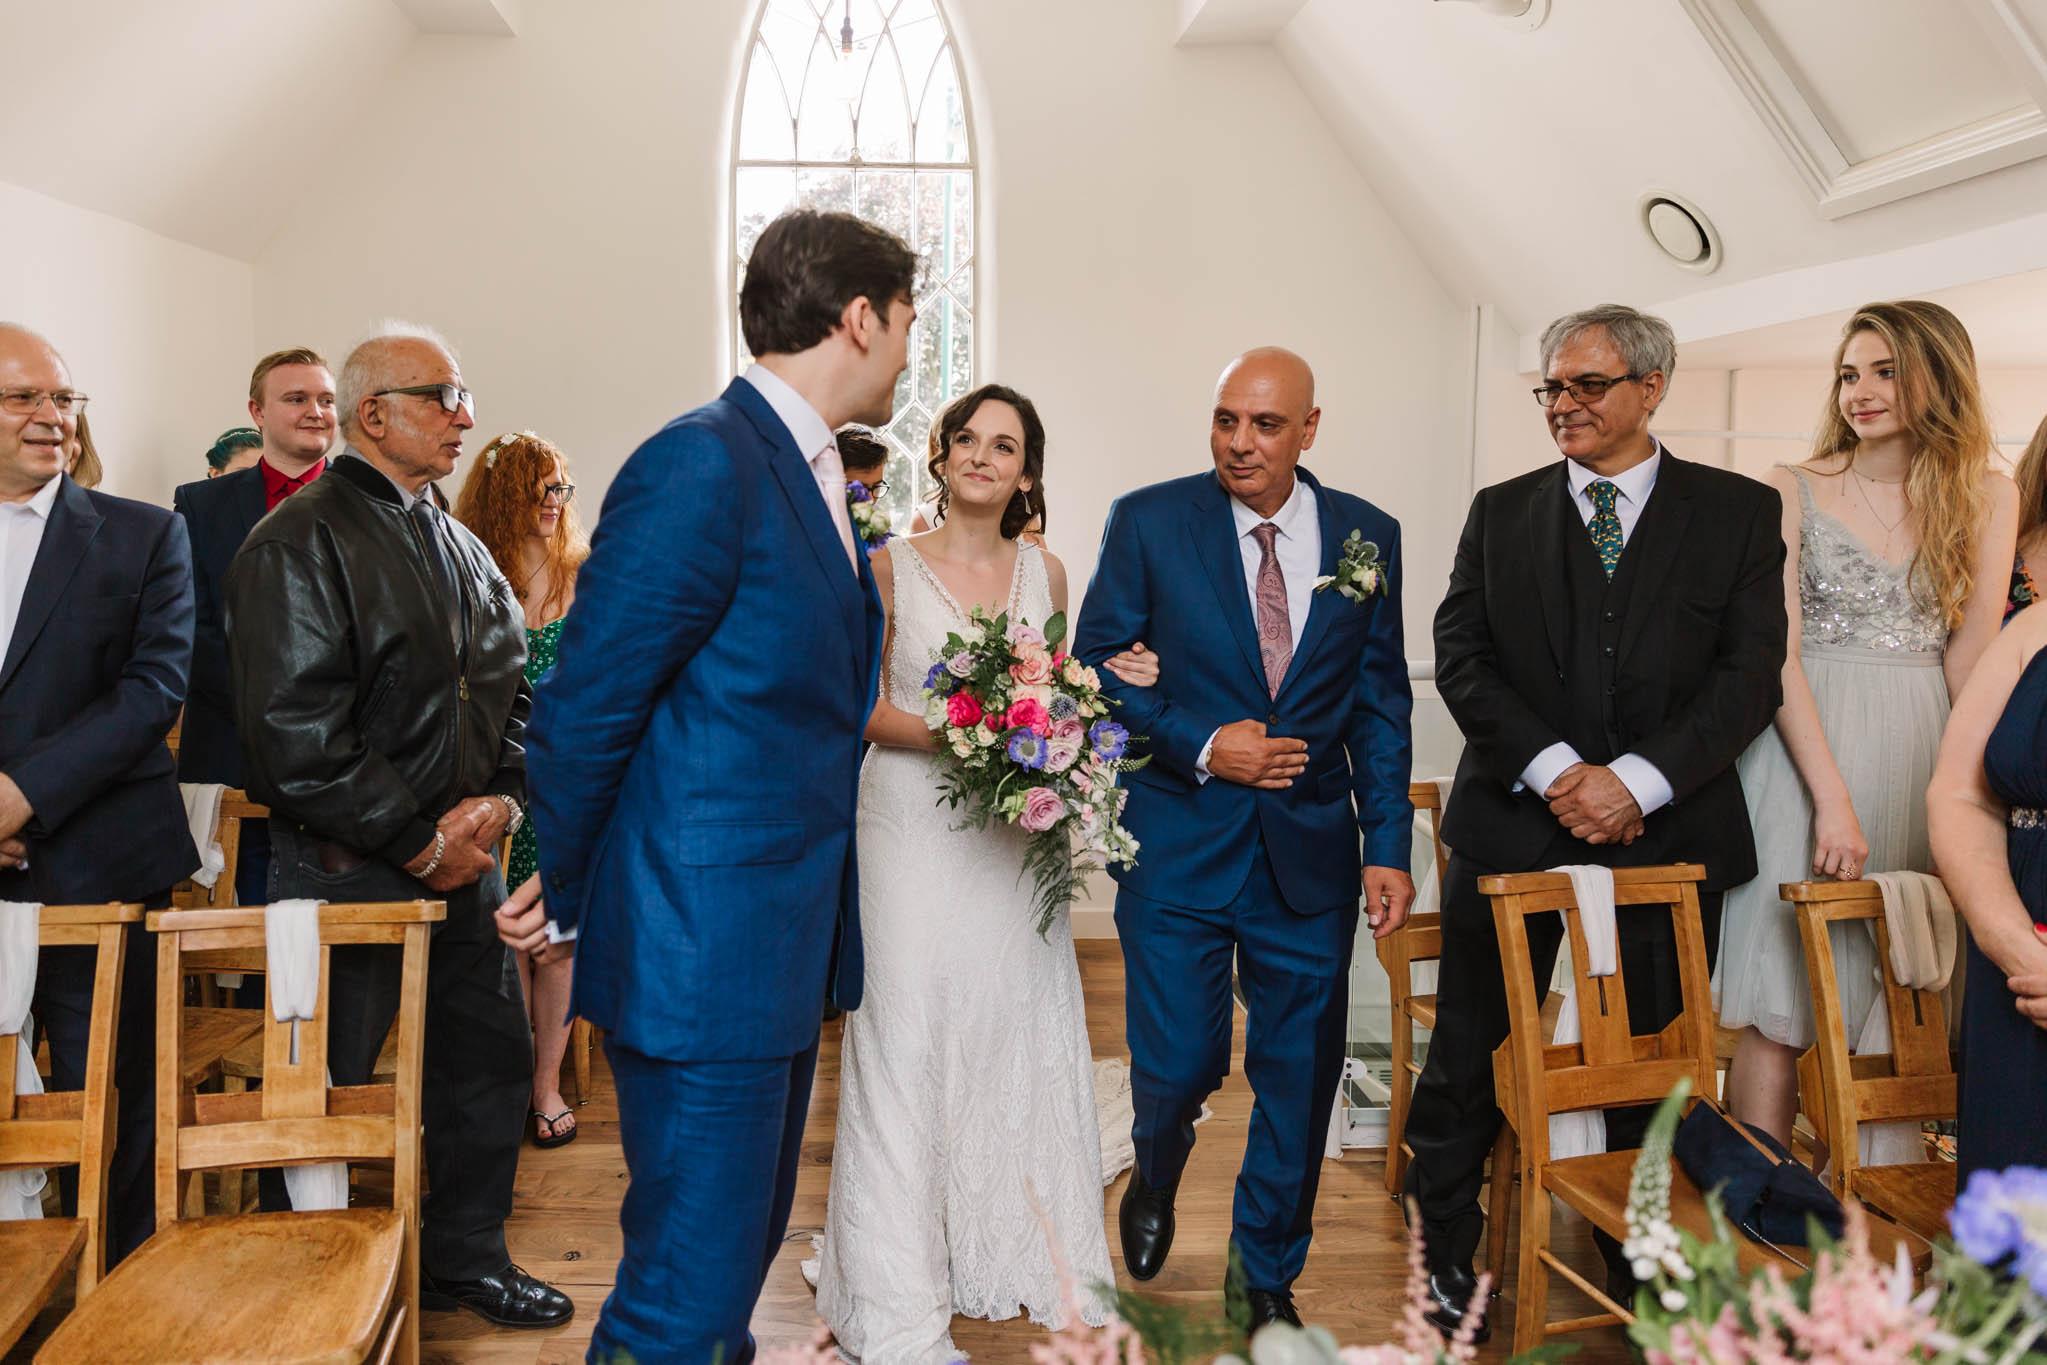 dad walking daughter down the aisle- Old parish rooms wedding